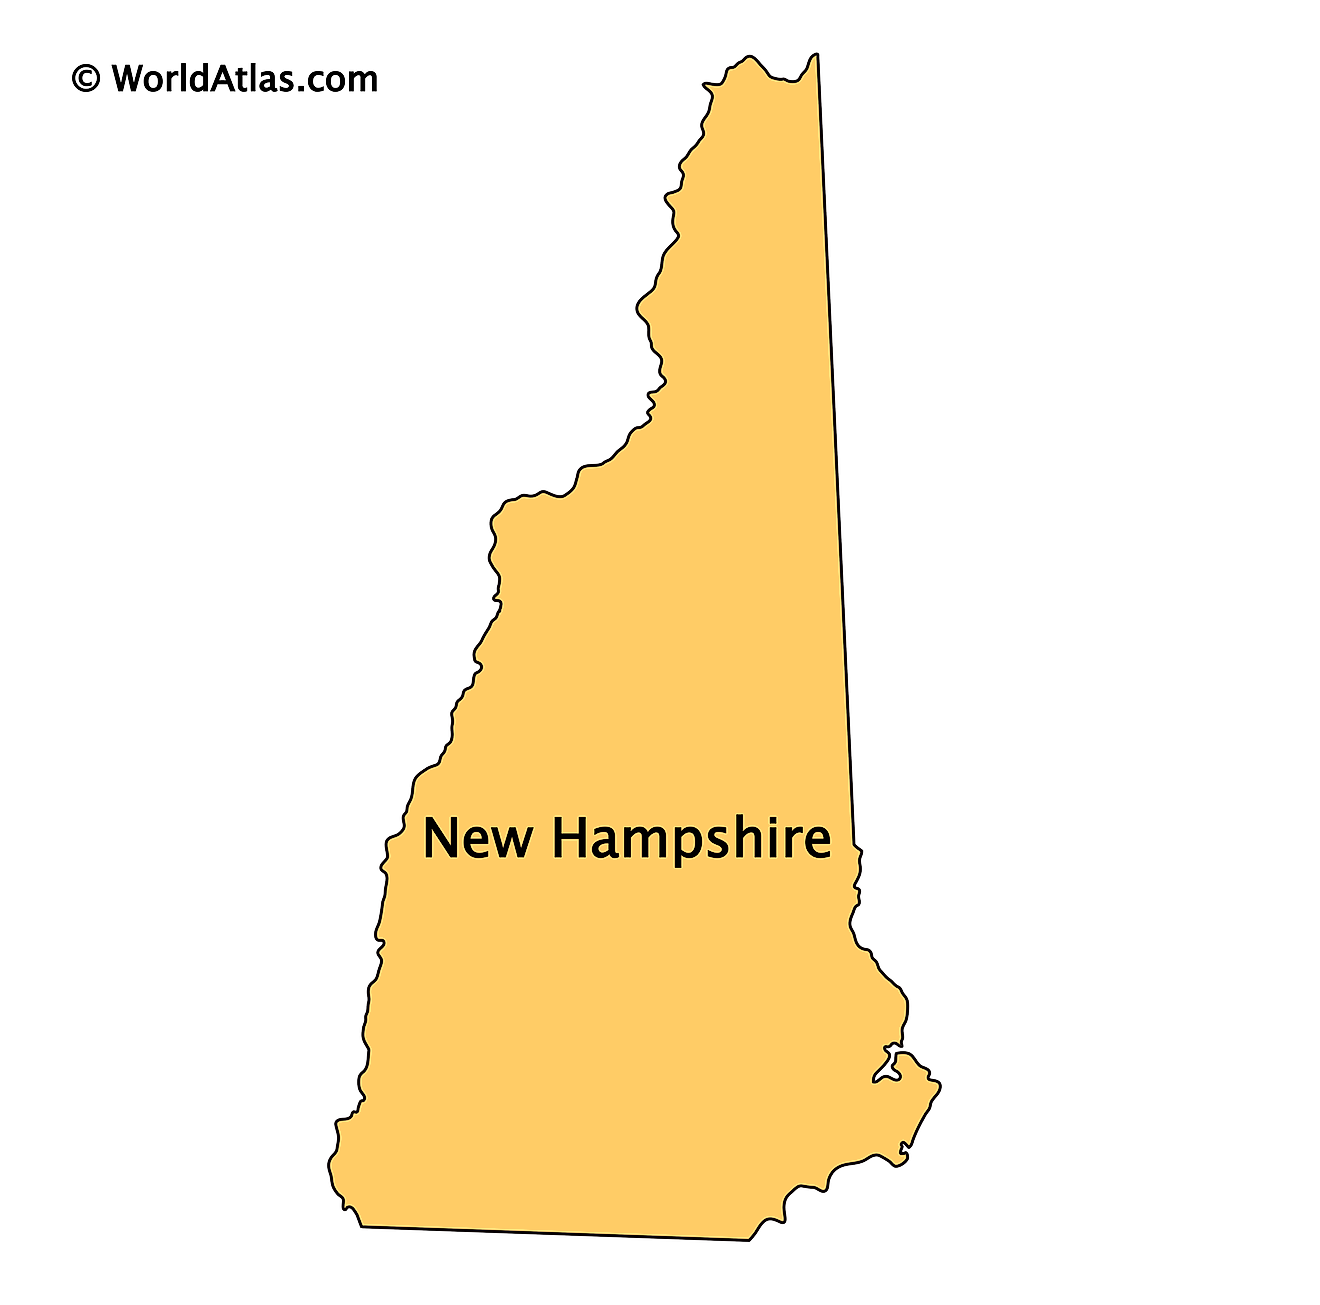 Outline Map of New Hampshire